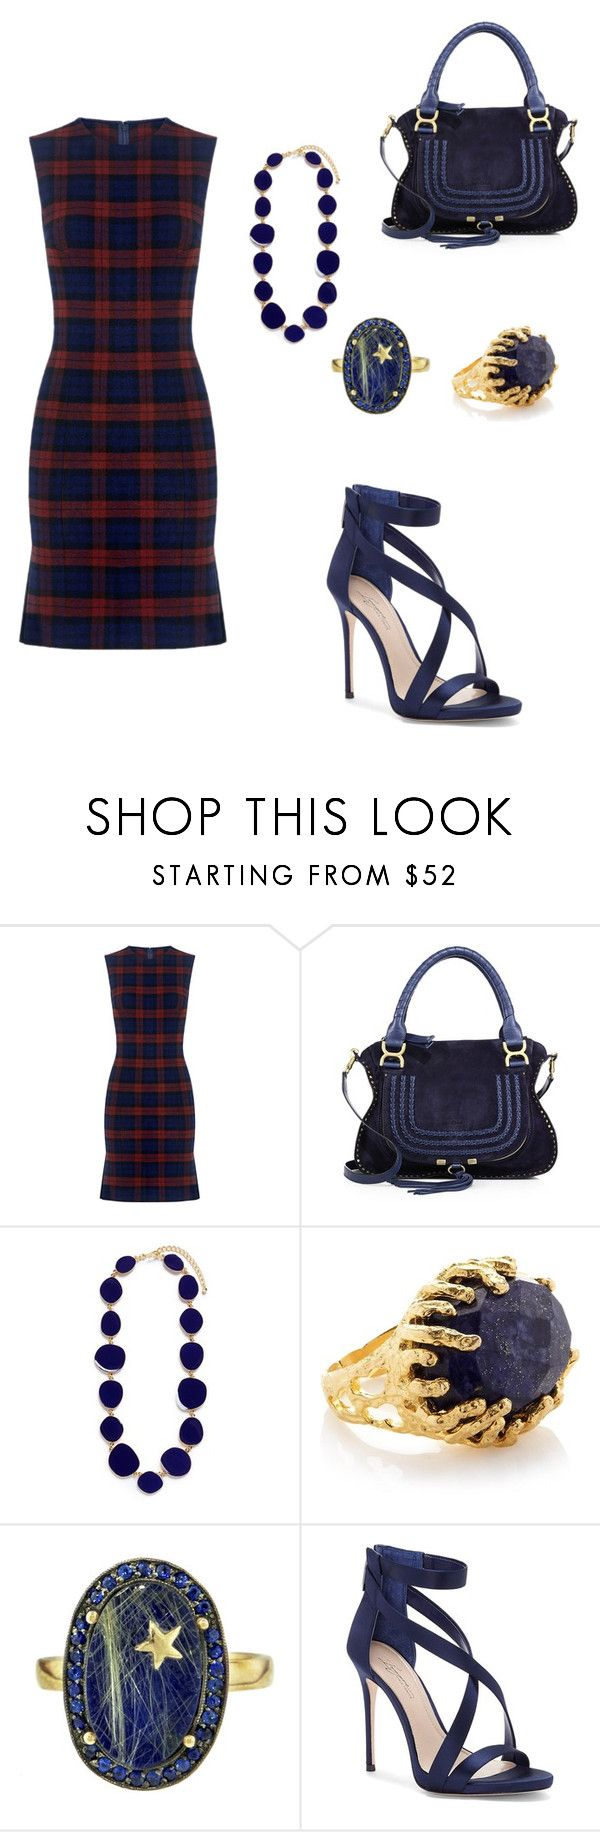 """""""Blue flannel"""" by mrsagosto ❤ liked on Polyvore featuring 10 Crosby Derek Lam, Chloé, Kenneth Jay Lane, Ottoman Hands, Andrea Fohrman and Imagine by Vince Camuto"""